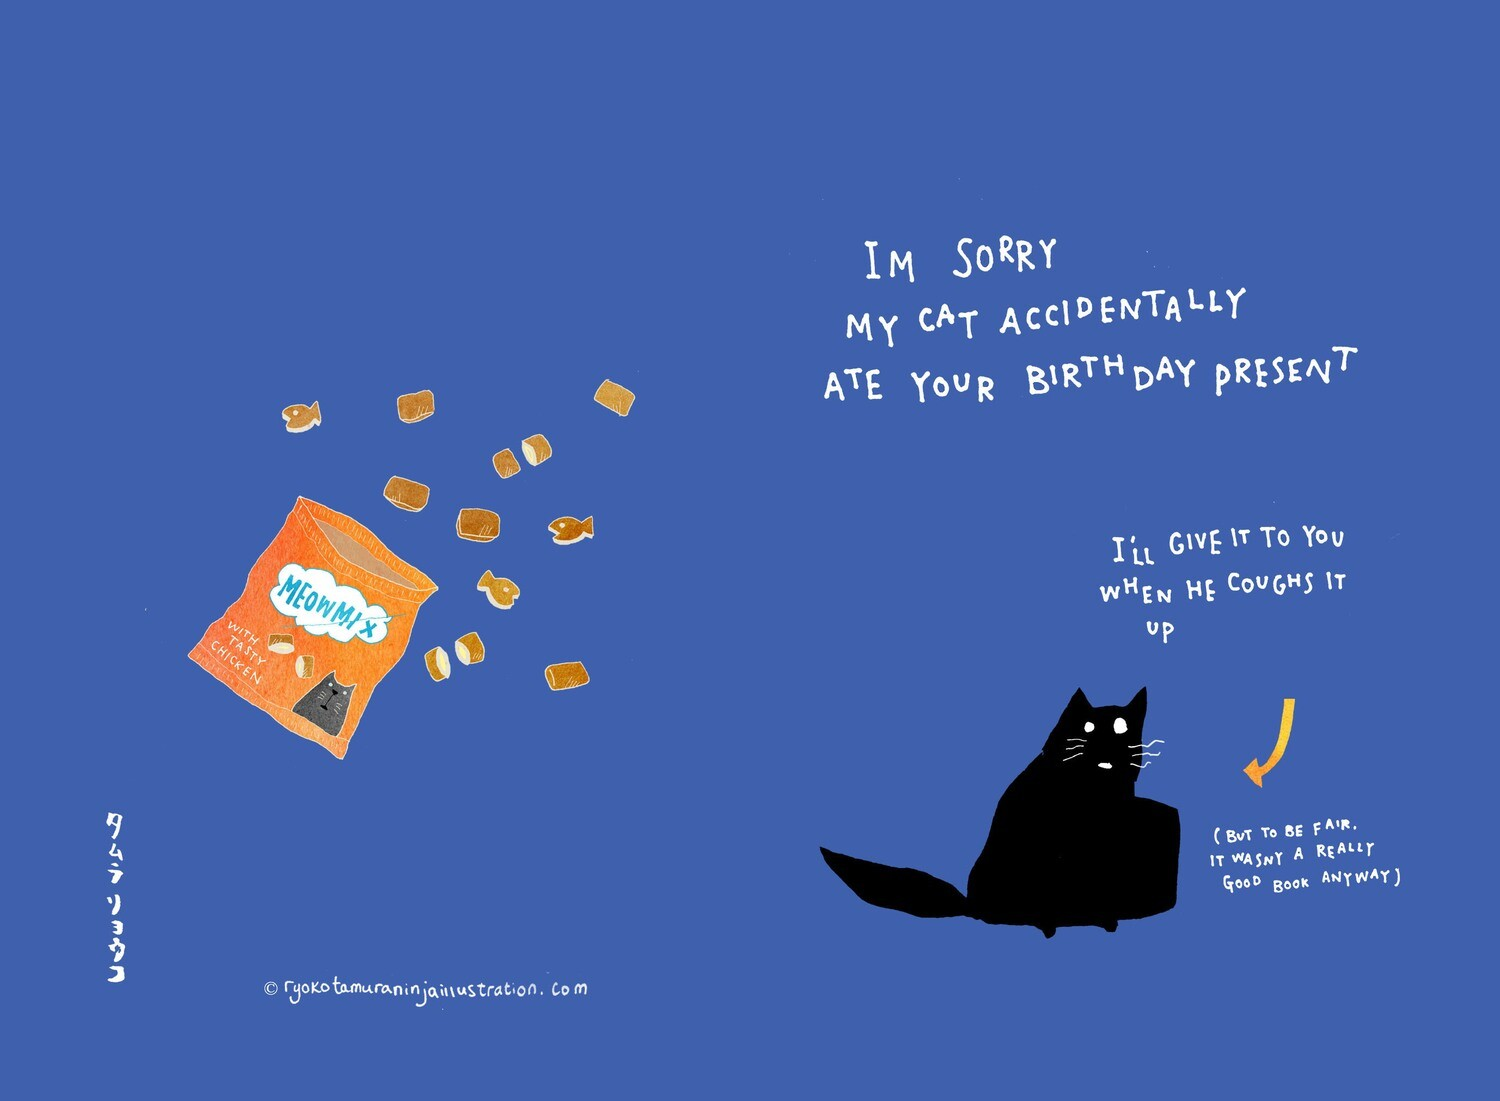 Sos the cat ate your birthday present Greetings card